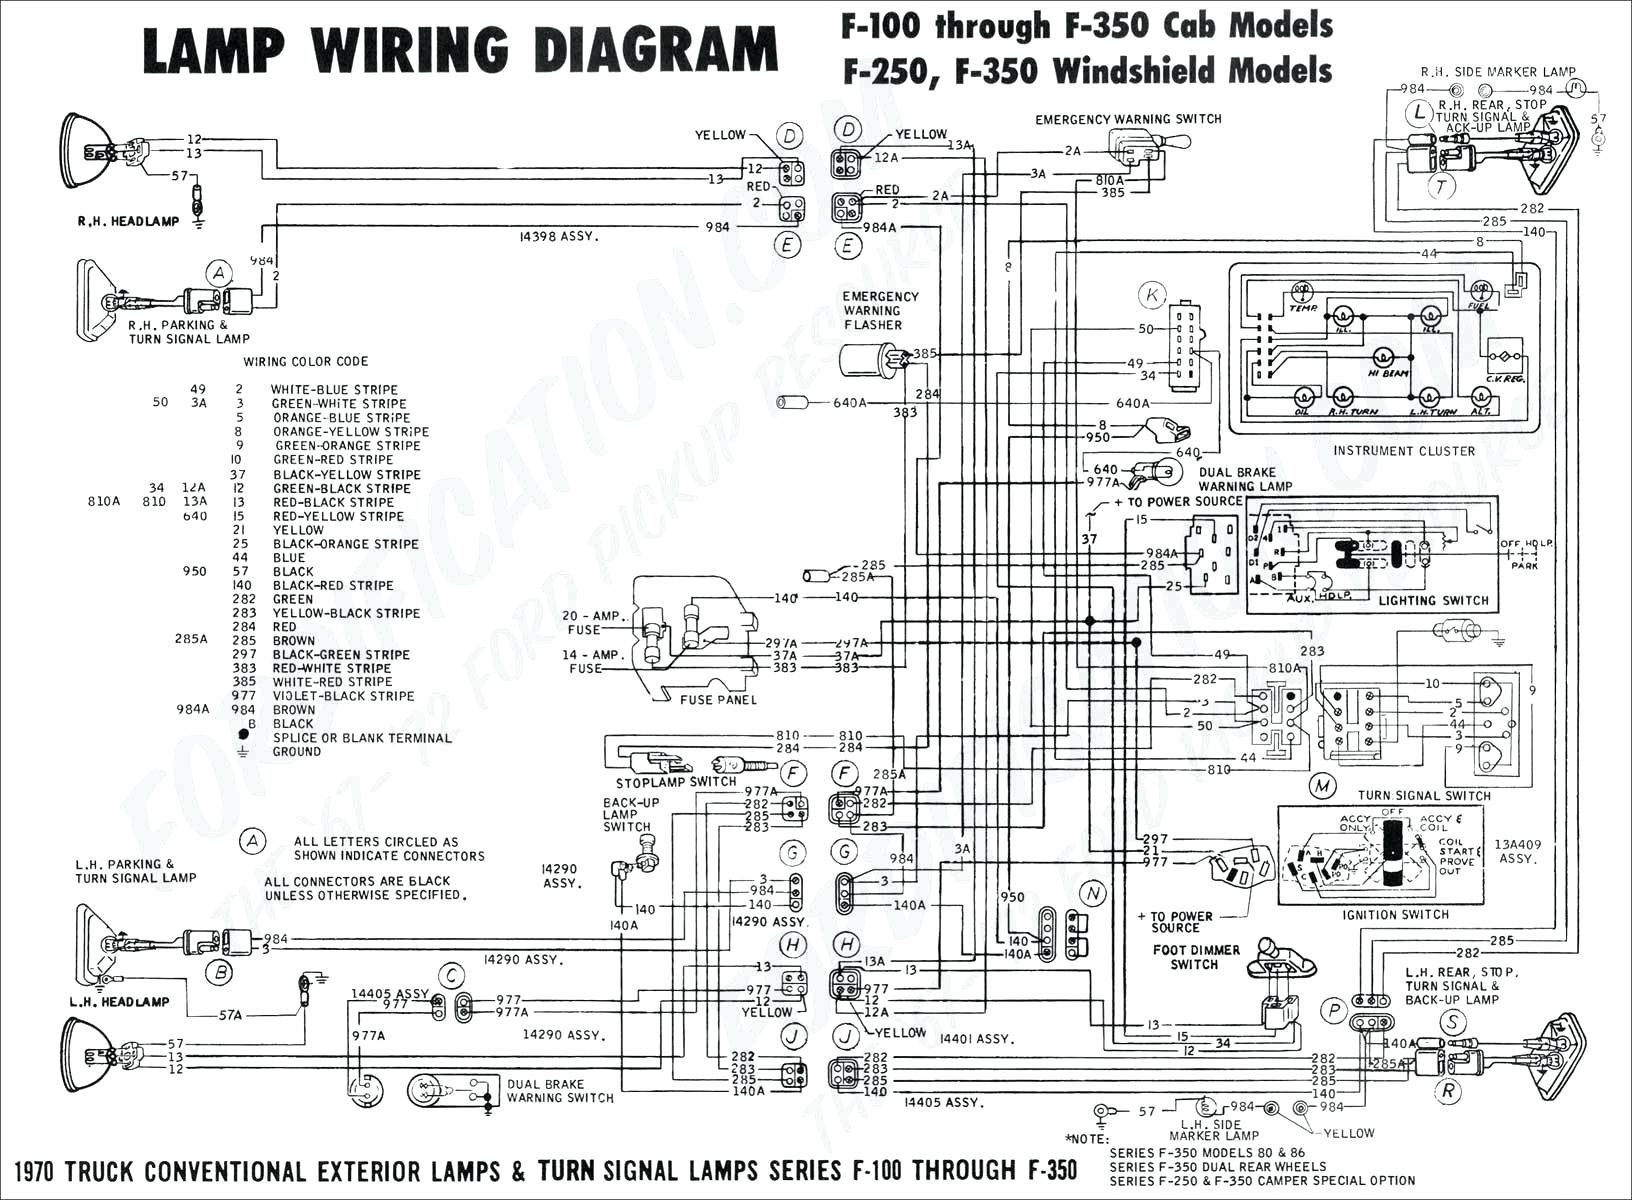 2004 Gmc Yukon Parts Diagram Wiring Diagram 2008 Tahoe Experts Wiring Diagram • Of 2004 Gmc Yukon Parts Diagram